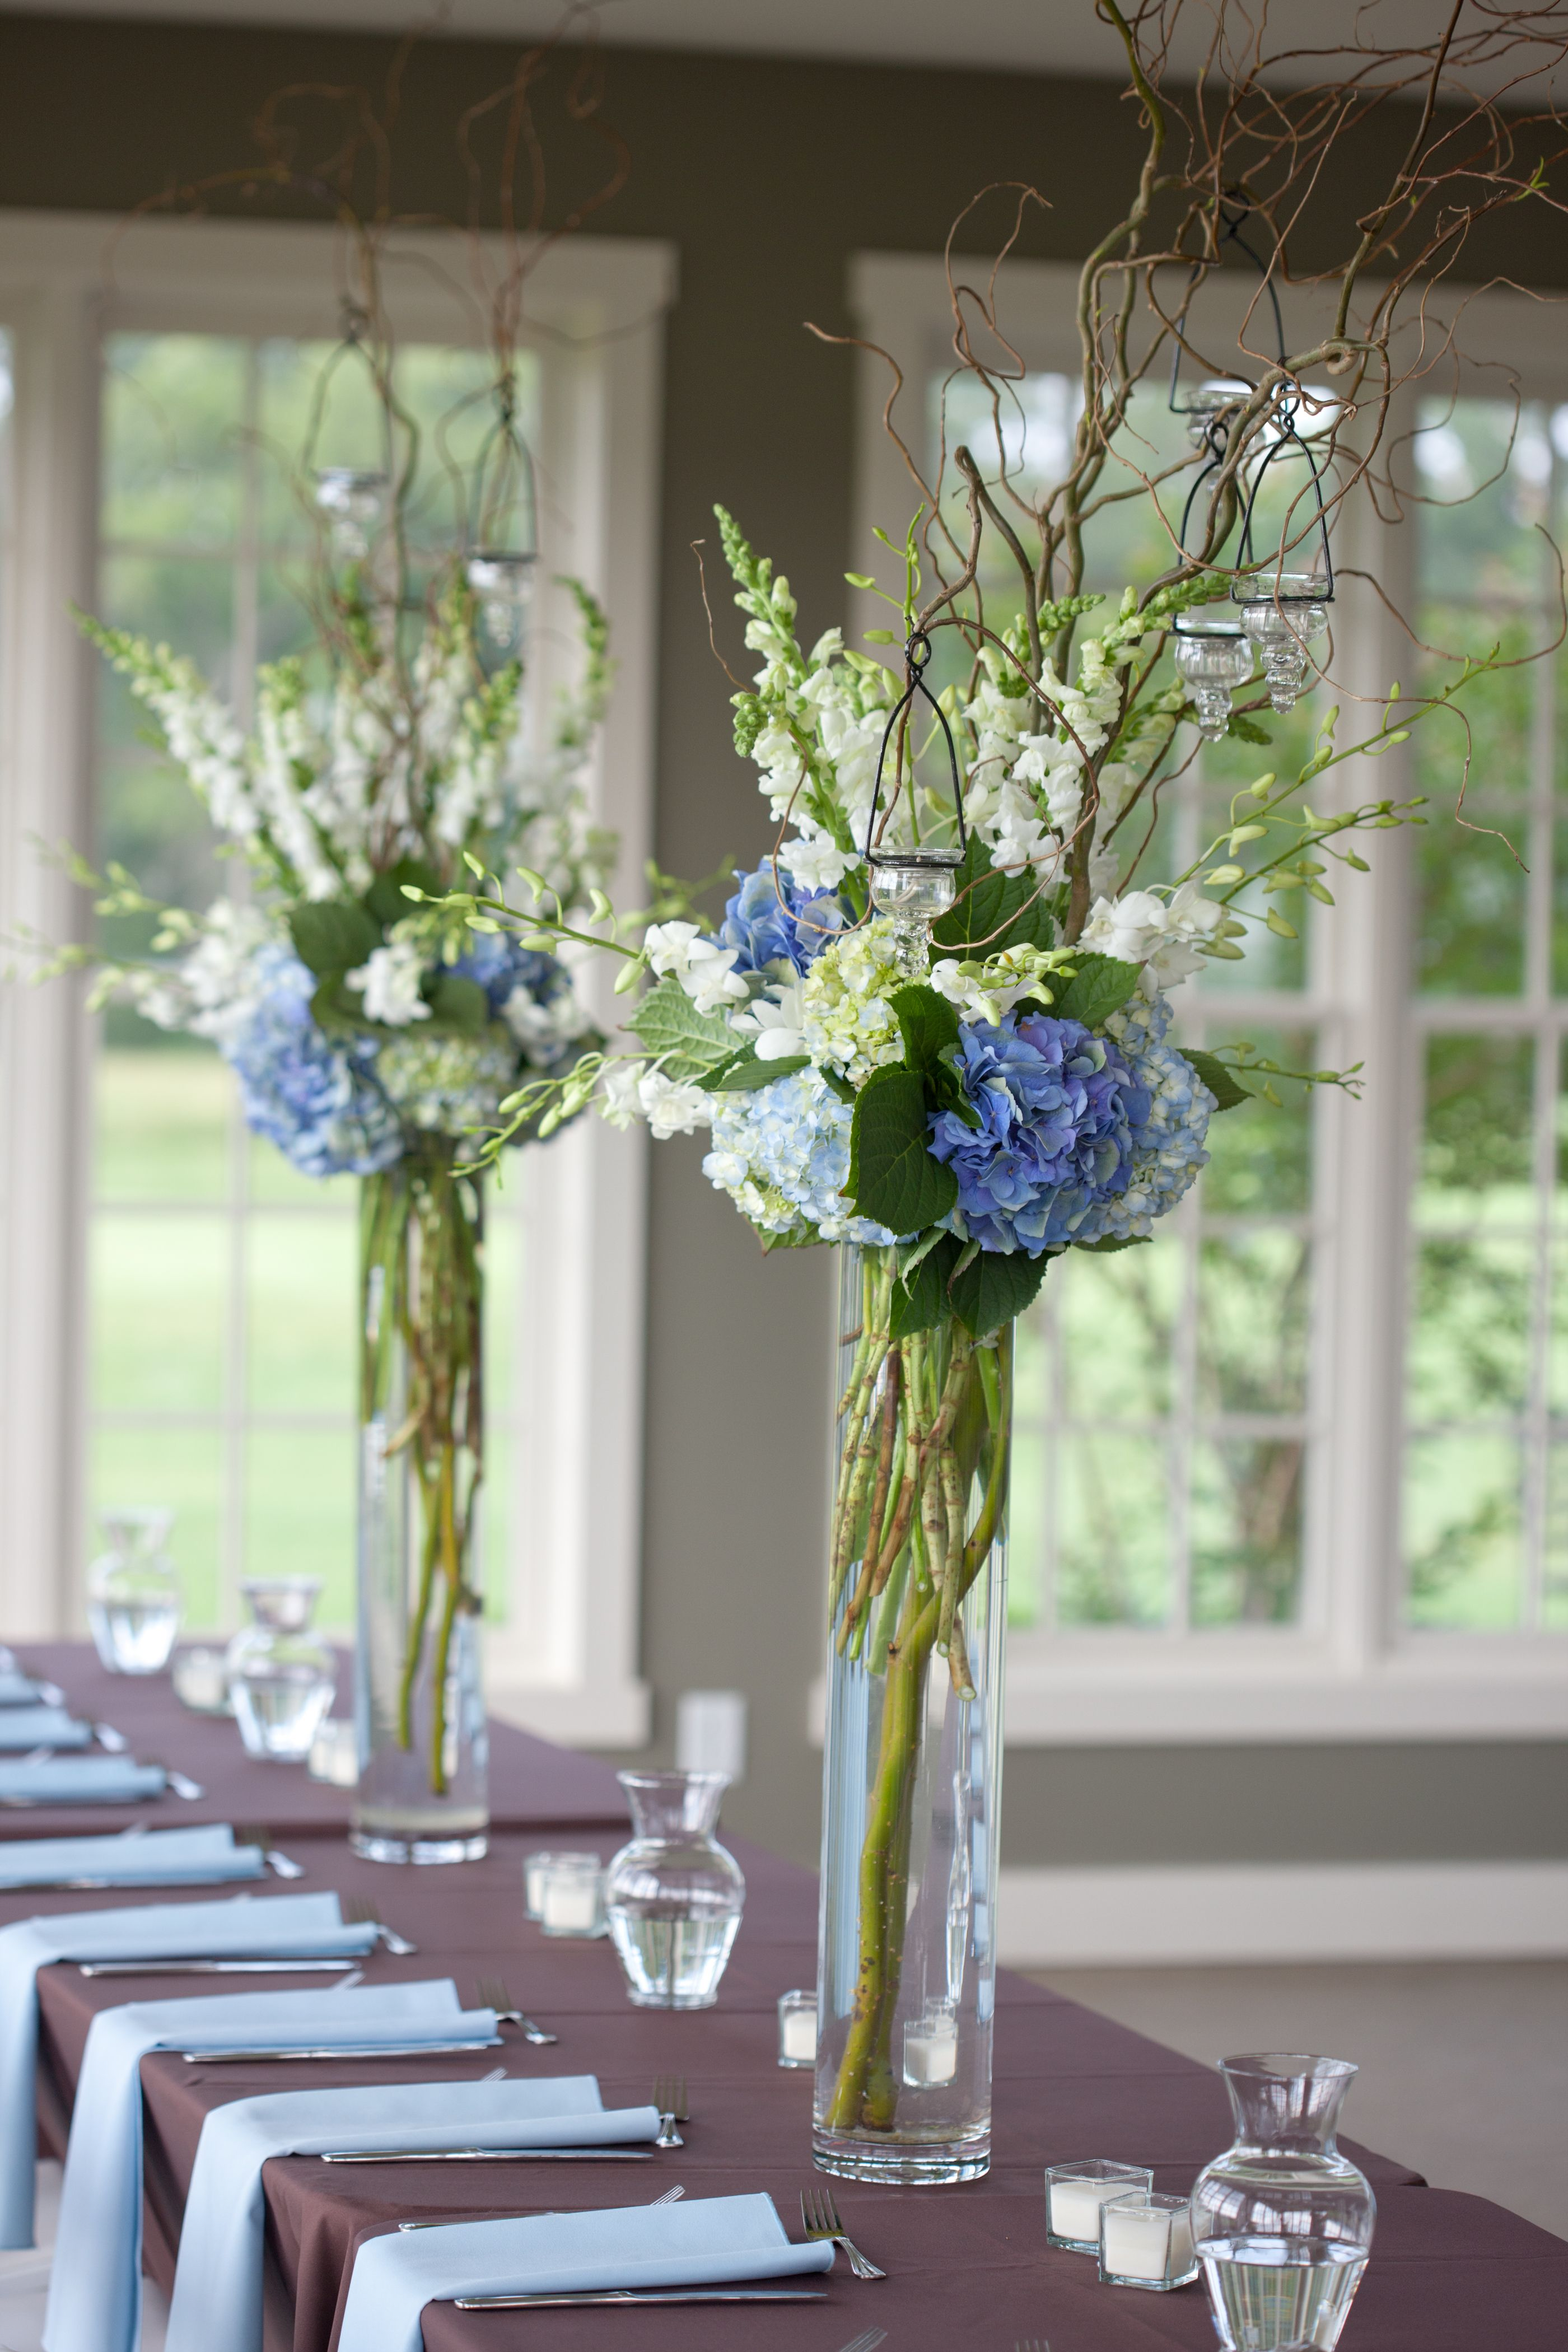 Blue and white reception wedding flowers wedding decor wedding blue and white reception wedding flowers wedding decor wedding flower centerpiece wedding flower arrangement add pic source on comment and we will izmirmasajfo